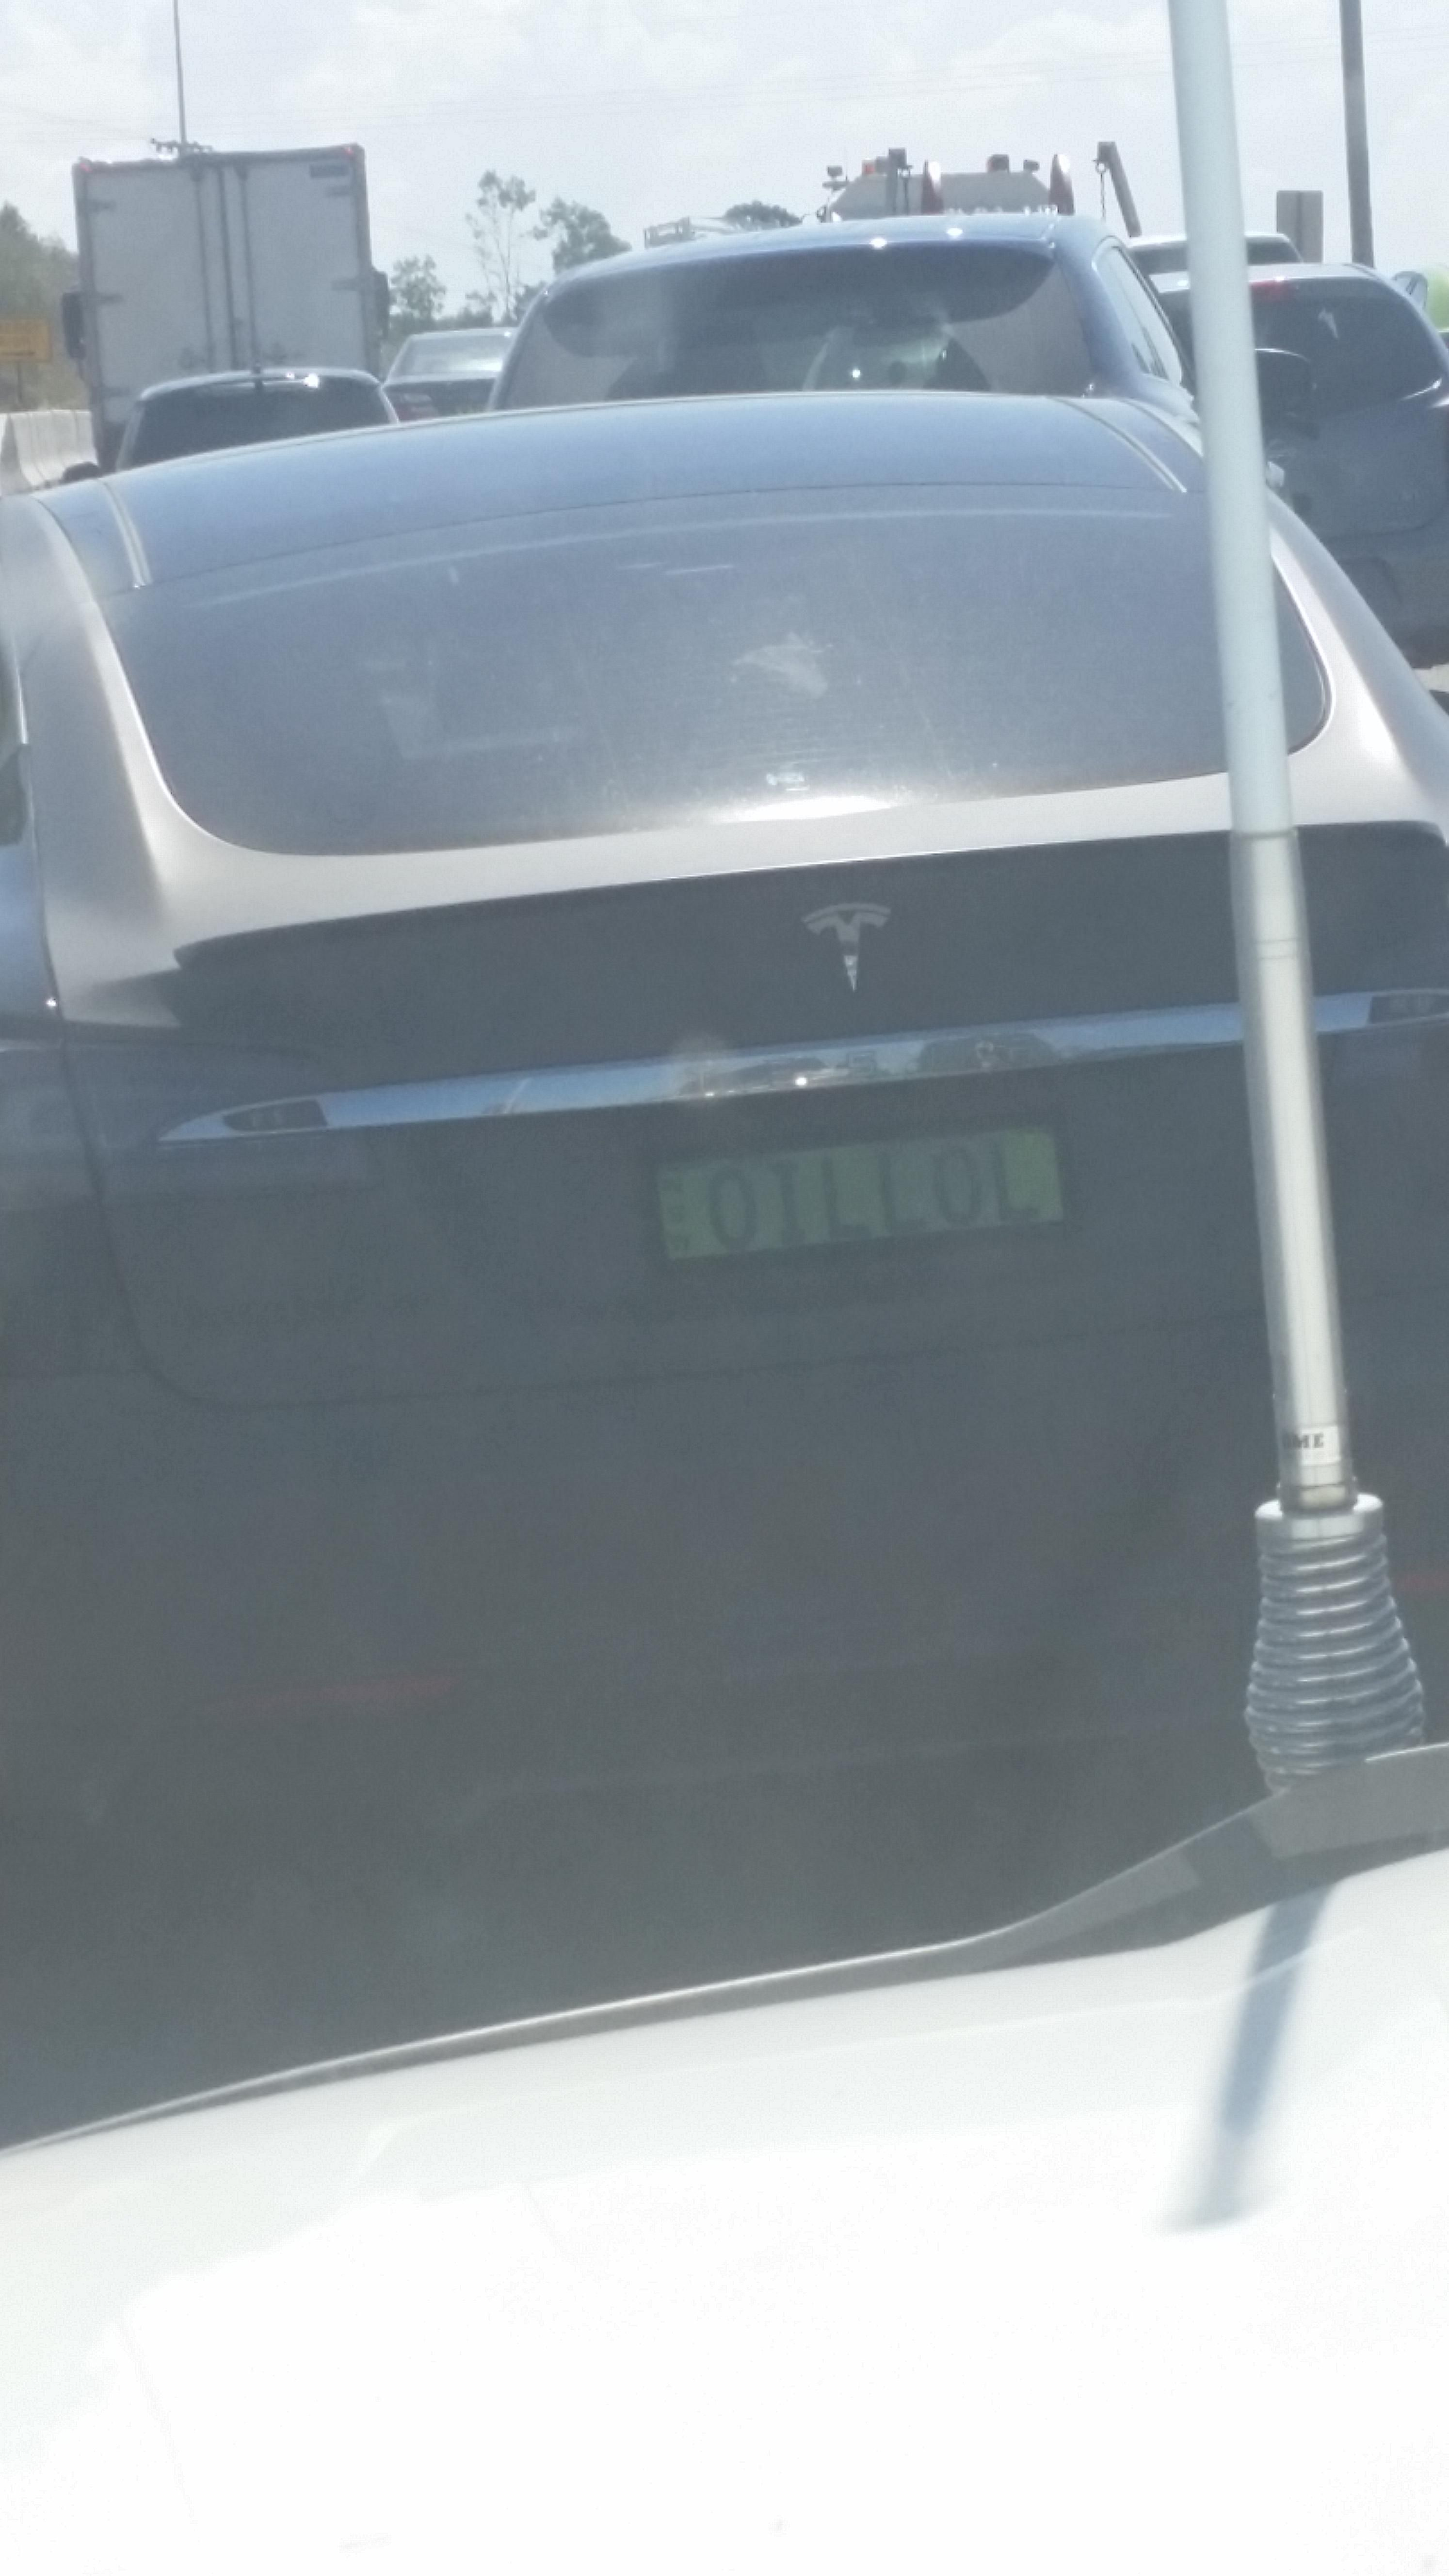 Saw my first Tesla today in Australia... I had a good laugh.